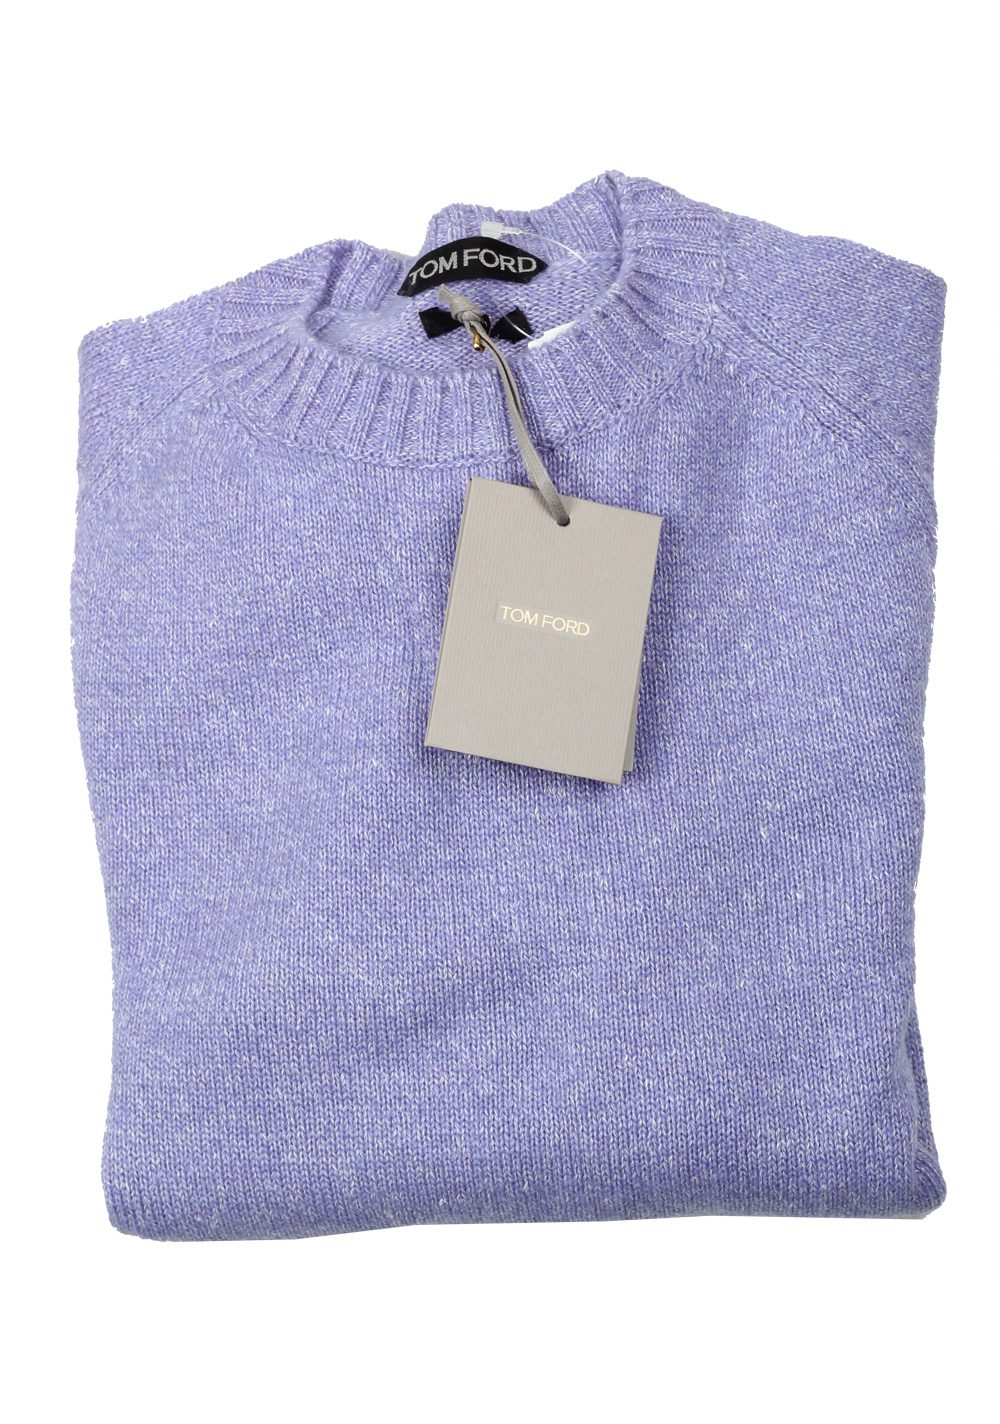 TOM FORD Lilac Crew Neck Sweater Size 48 / 38R U.S. In Cashmere Blend | Costume Limité